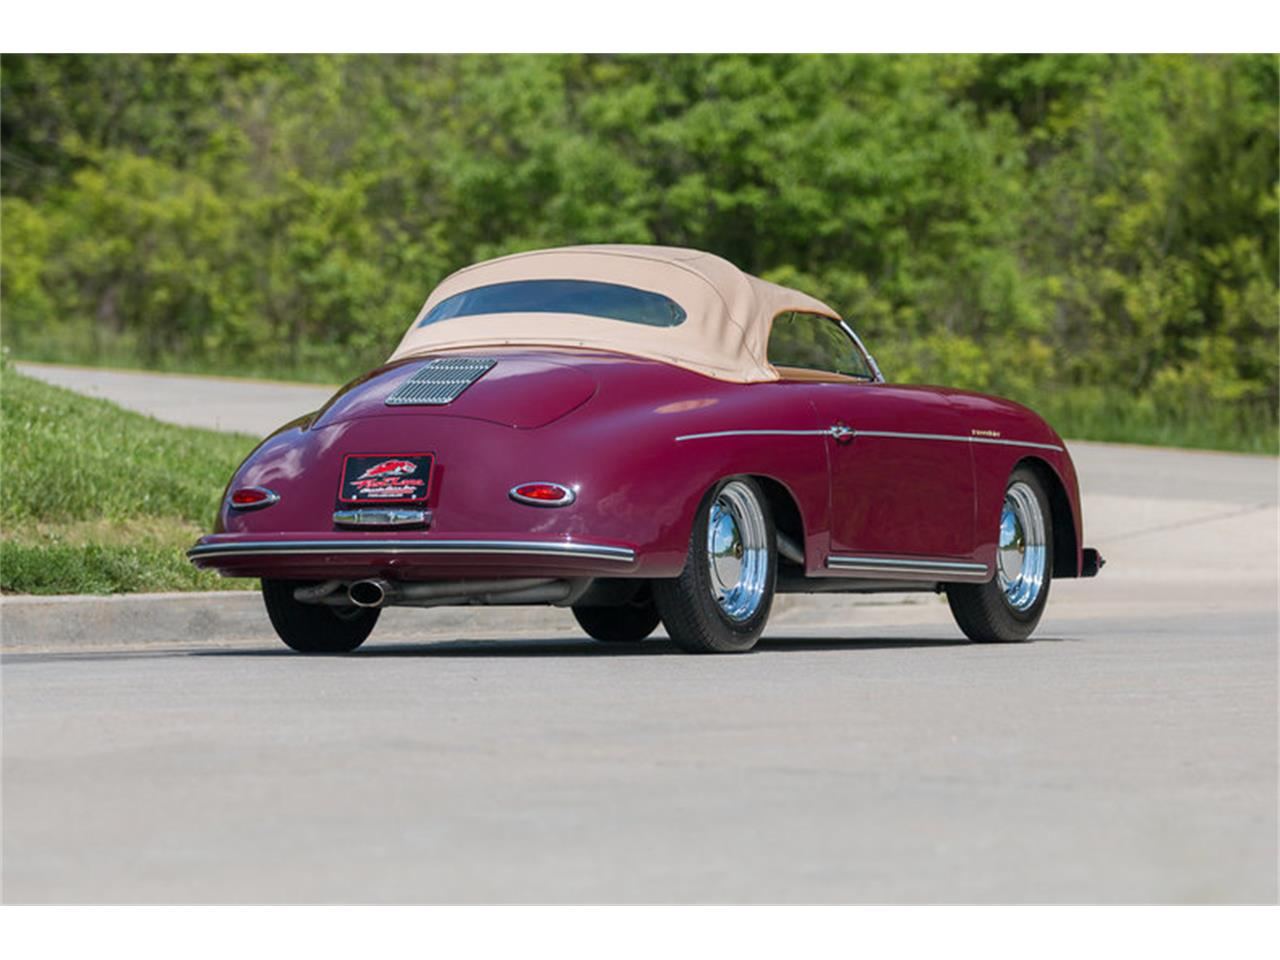 Large Picture of Classic '57 Other/special Speedster - $34,995.00 - L3G9